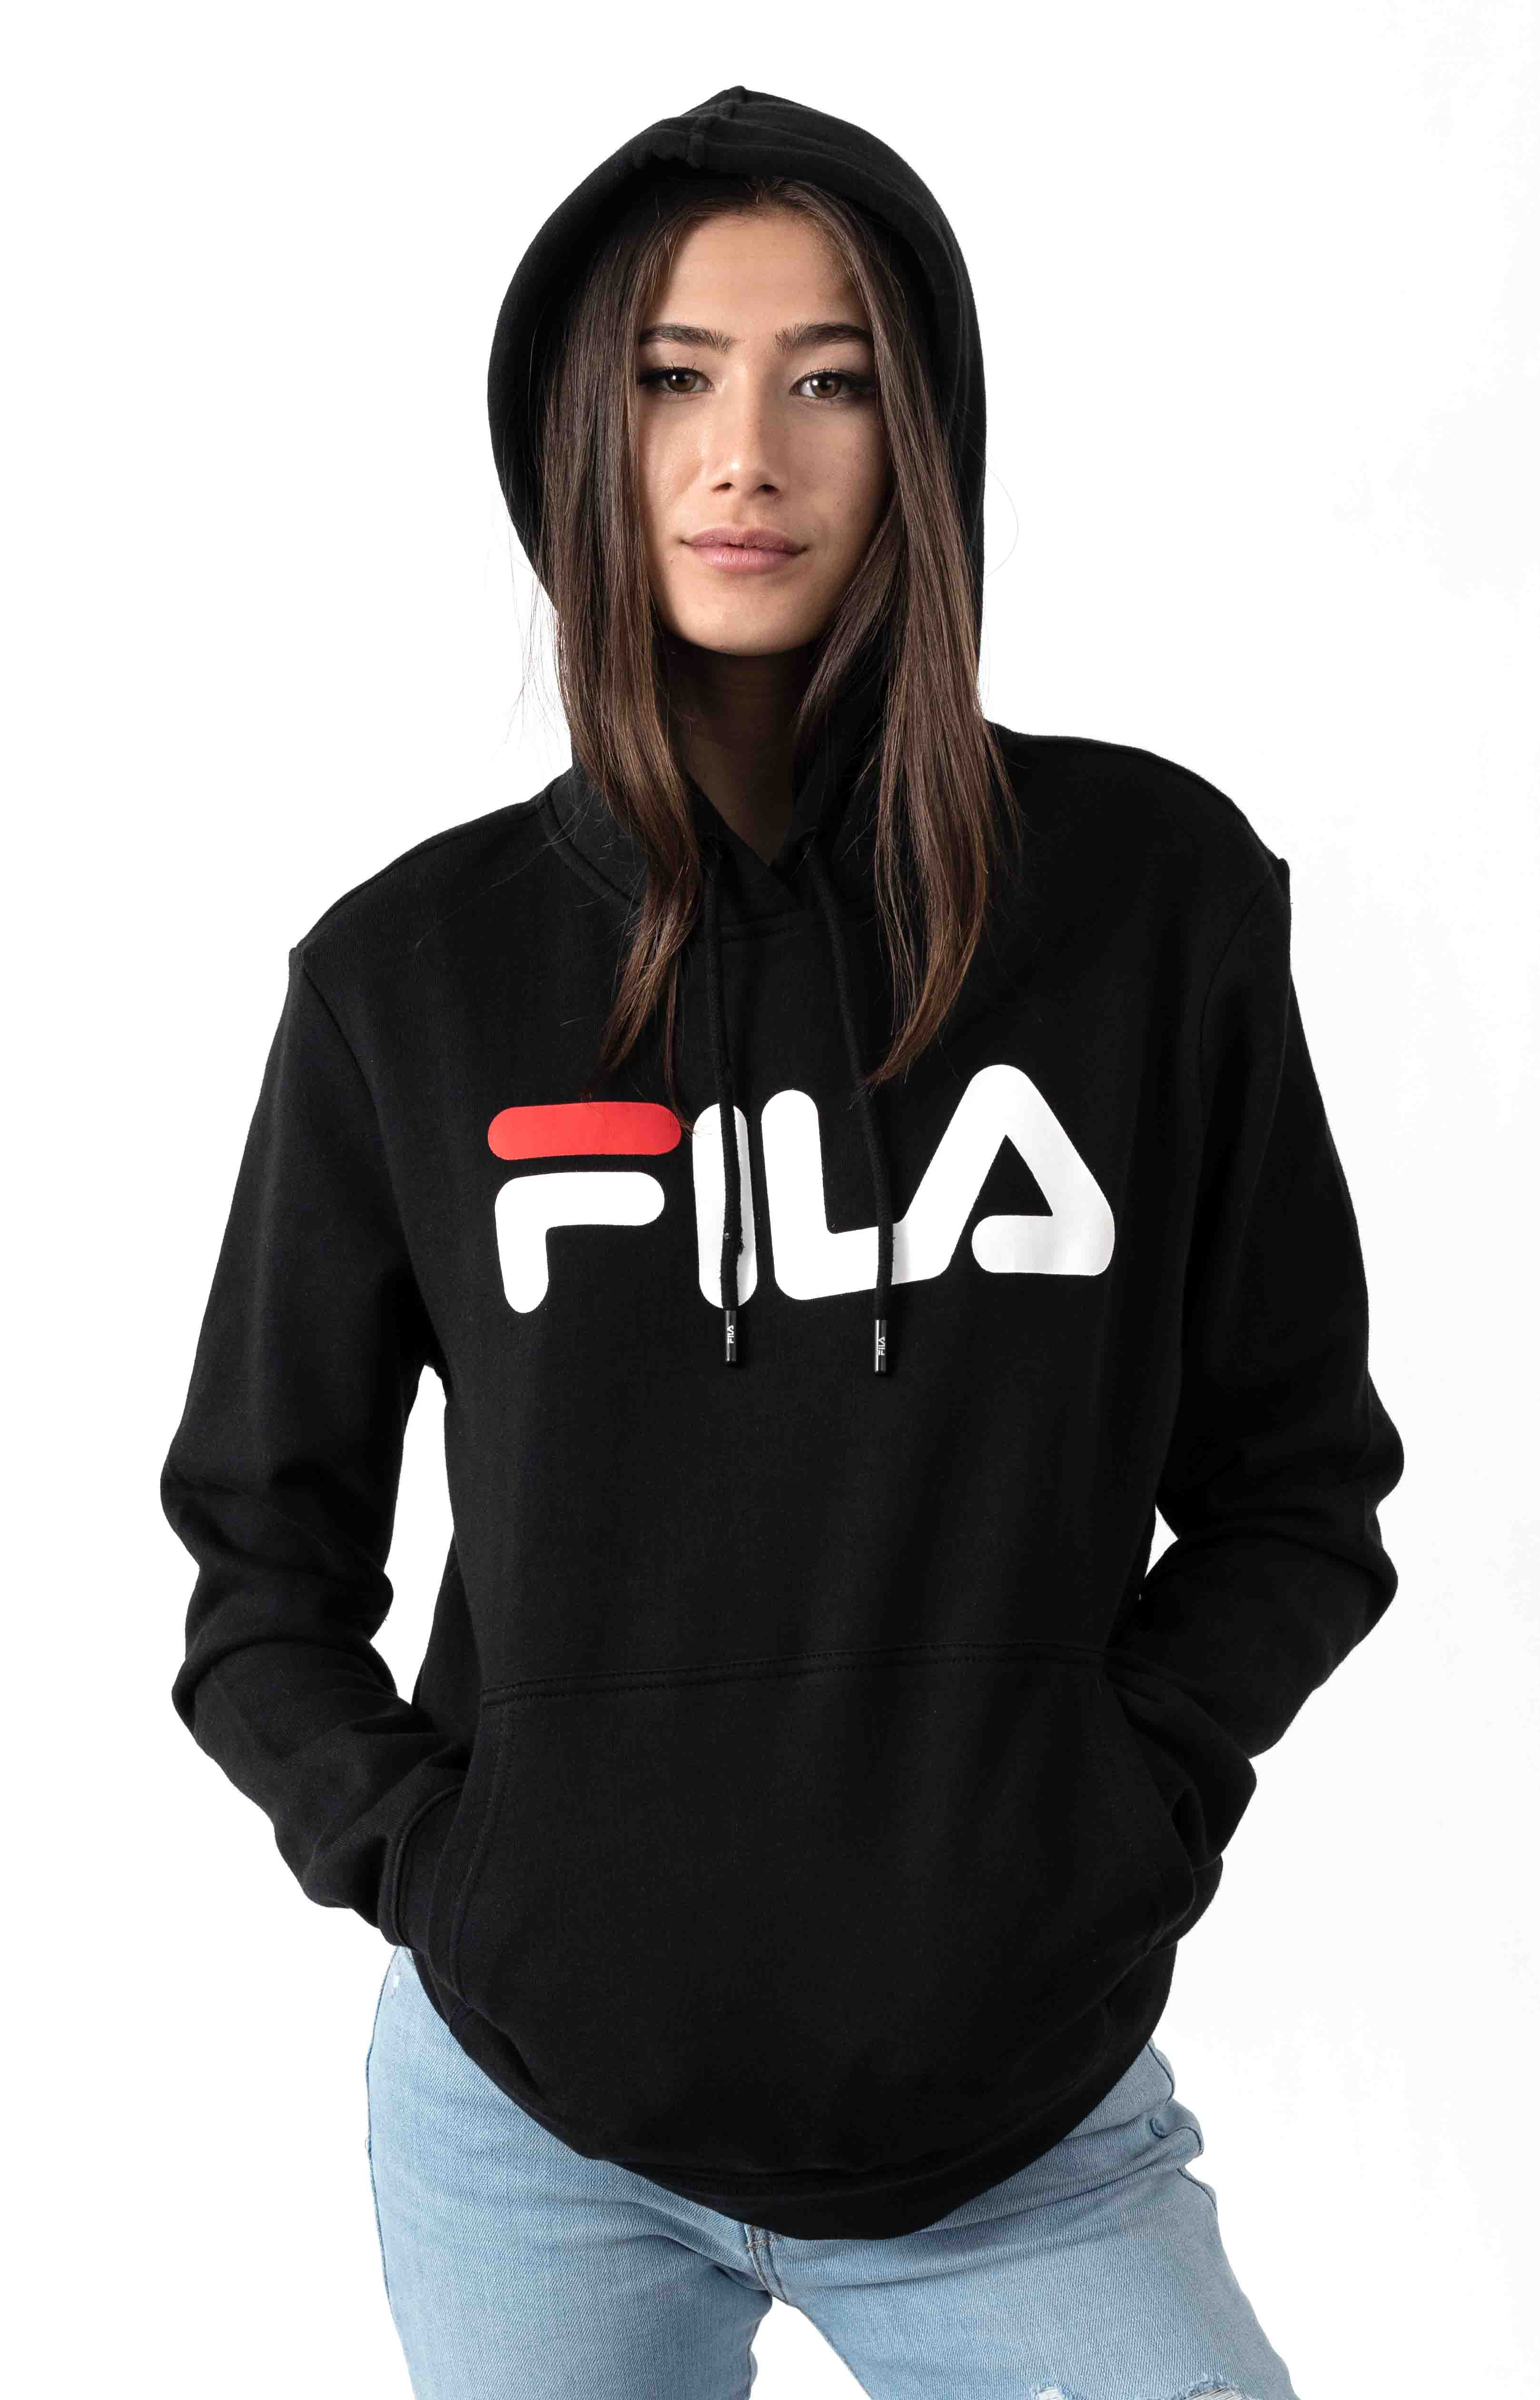 Lucy Pullover Hoodie - Black/White